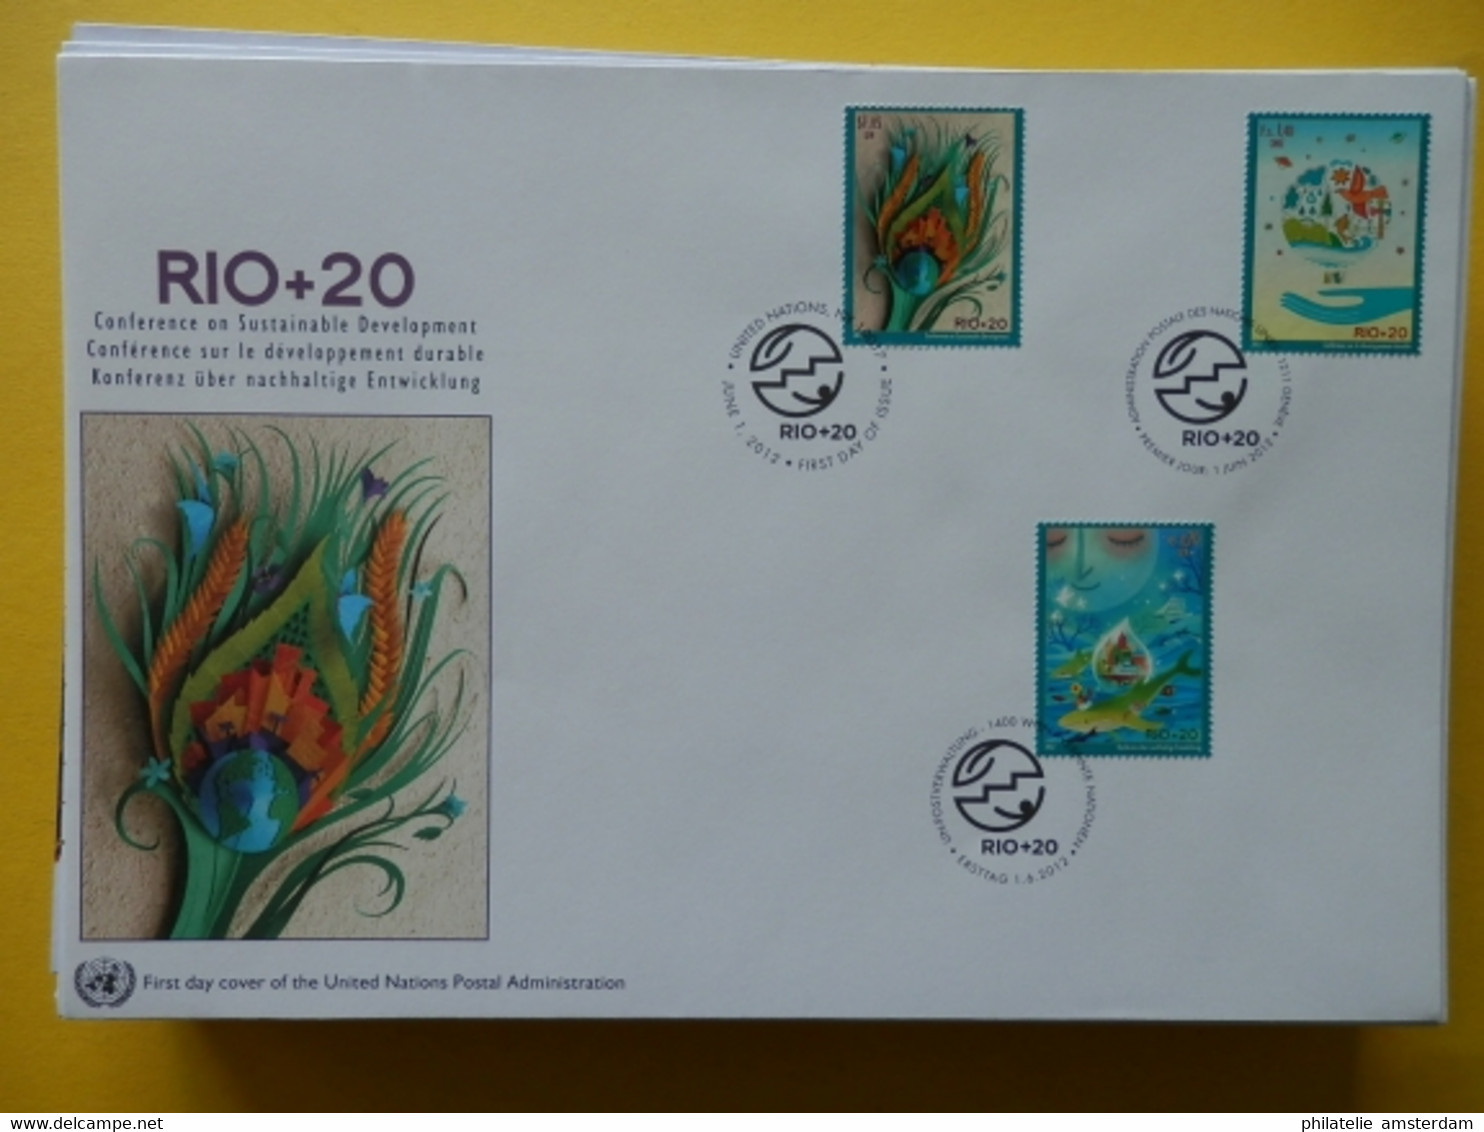 Start 1 EURO - United Nations First Day Covers (large Format) 2011-2017 - UNO